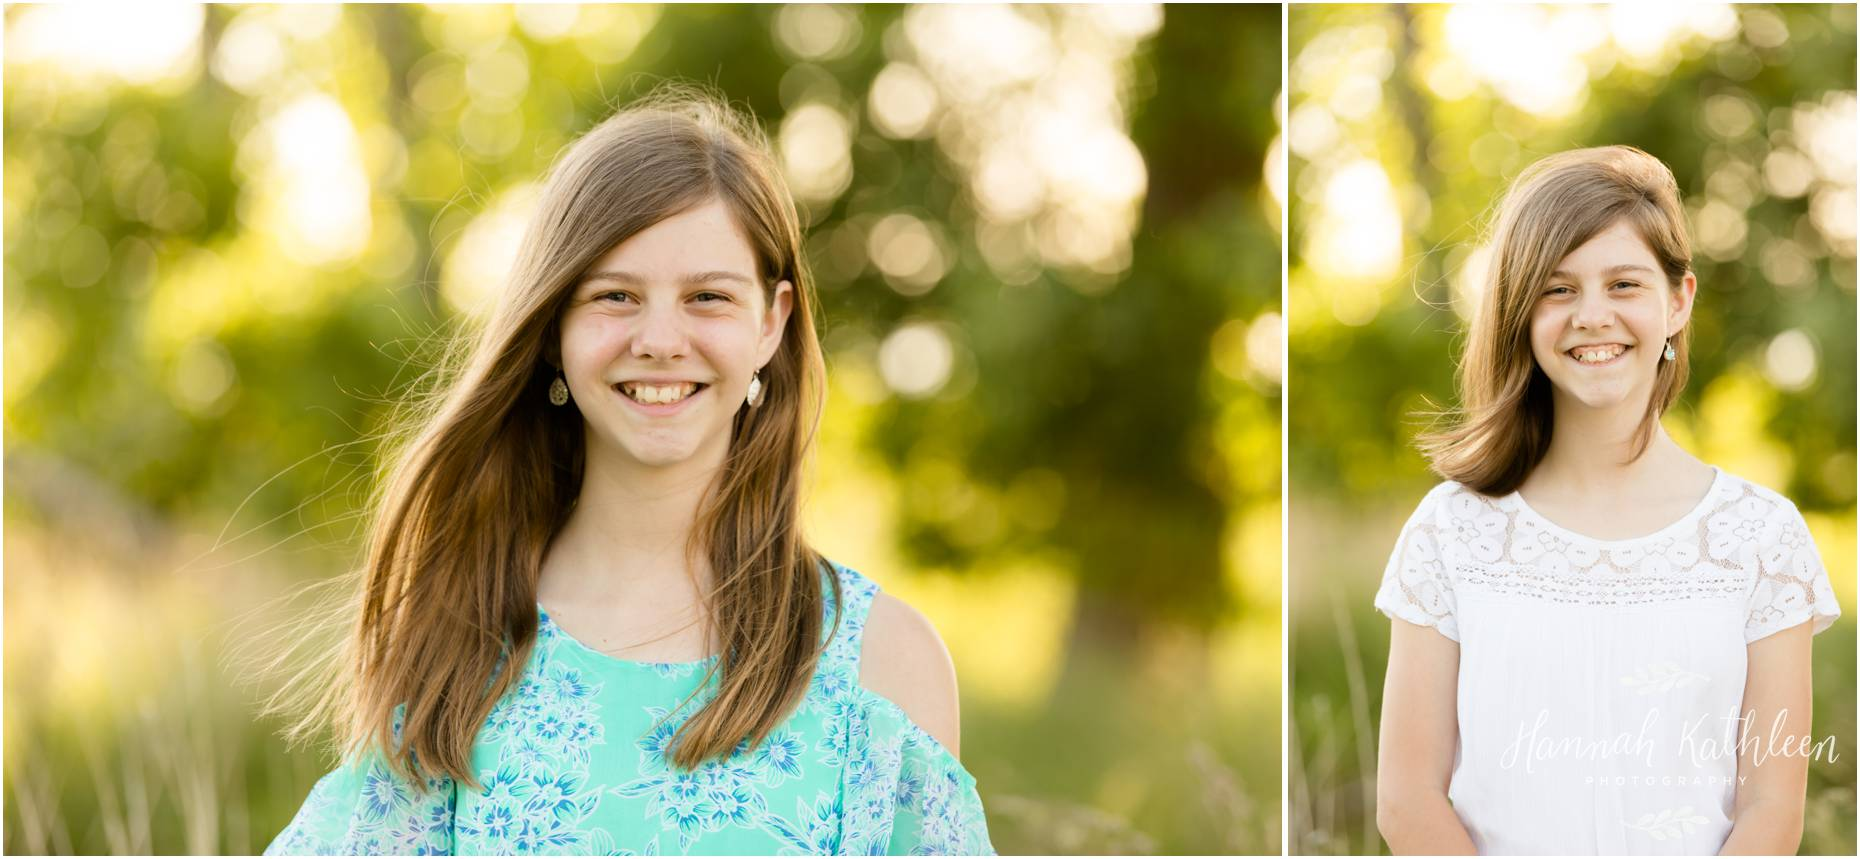 Extended_Family_Photographer_Habicht_WNY